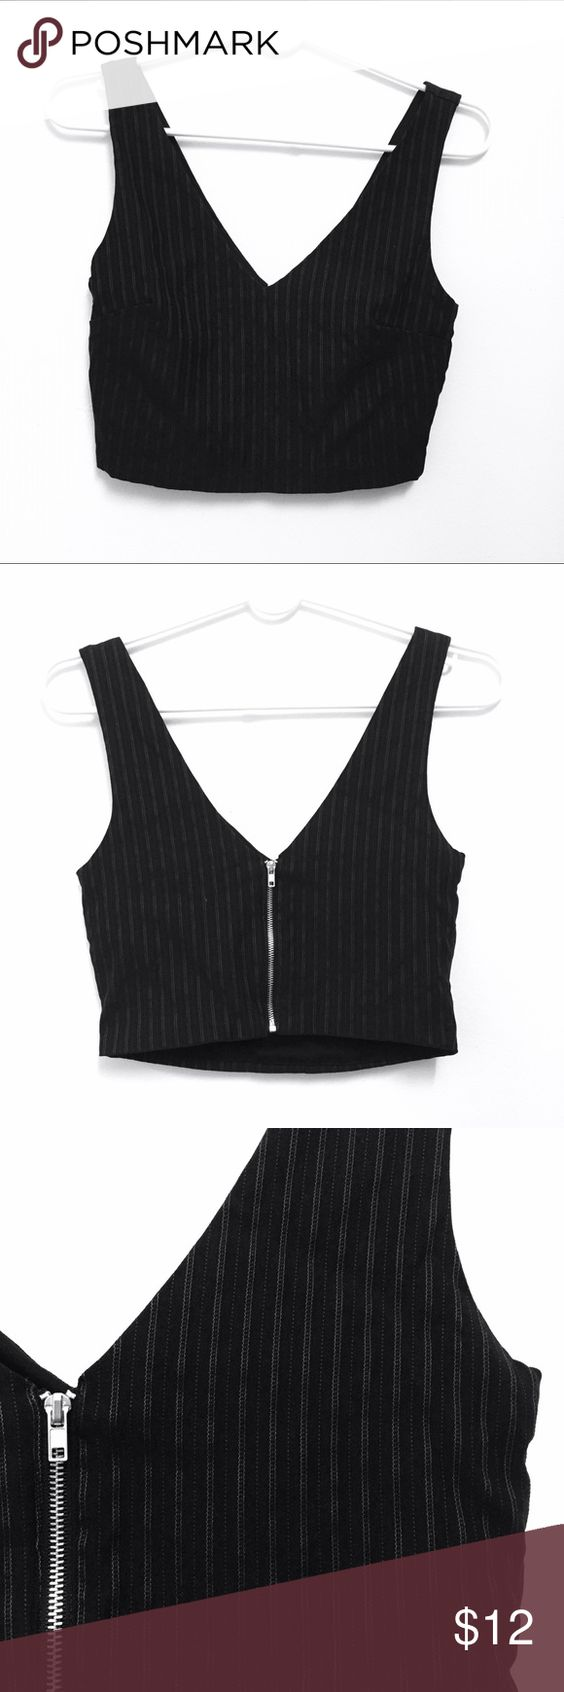 Zipper back Crop Top V-neck Crop Top with lightly lined grey thread stripes. Forever 21 Tops Crop Tops